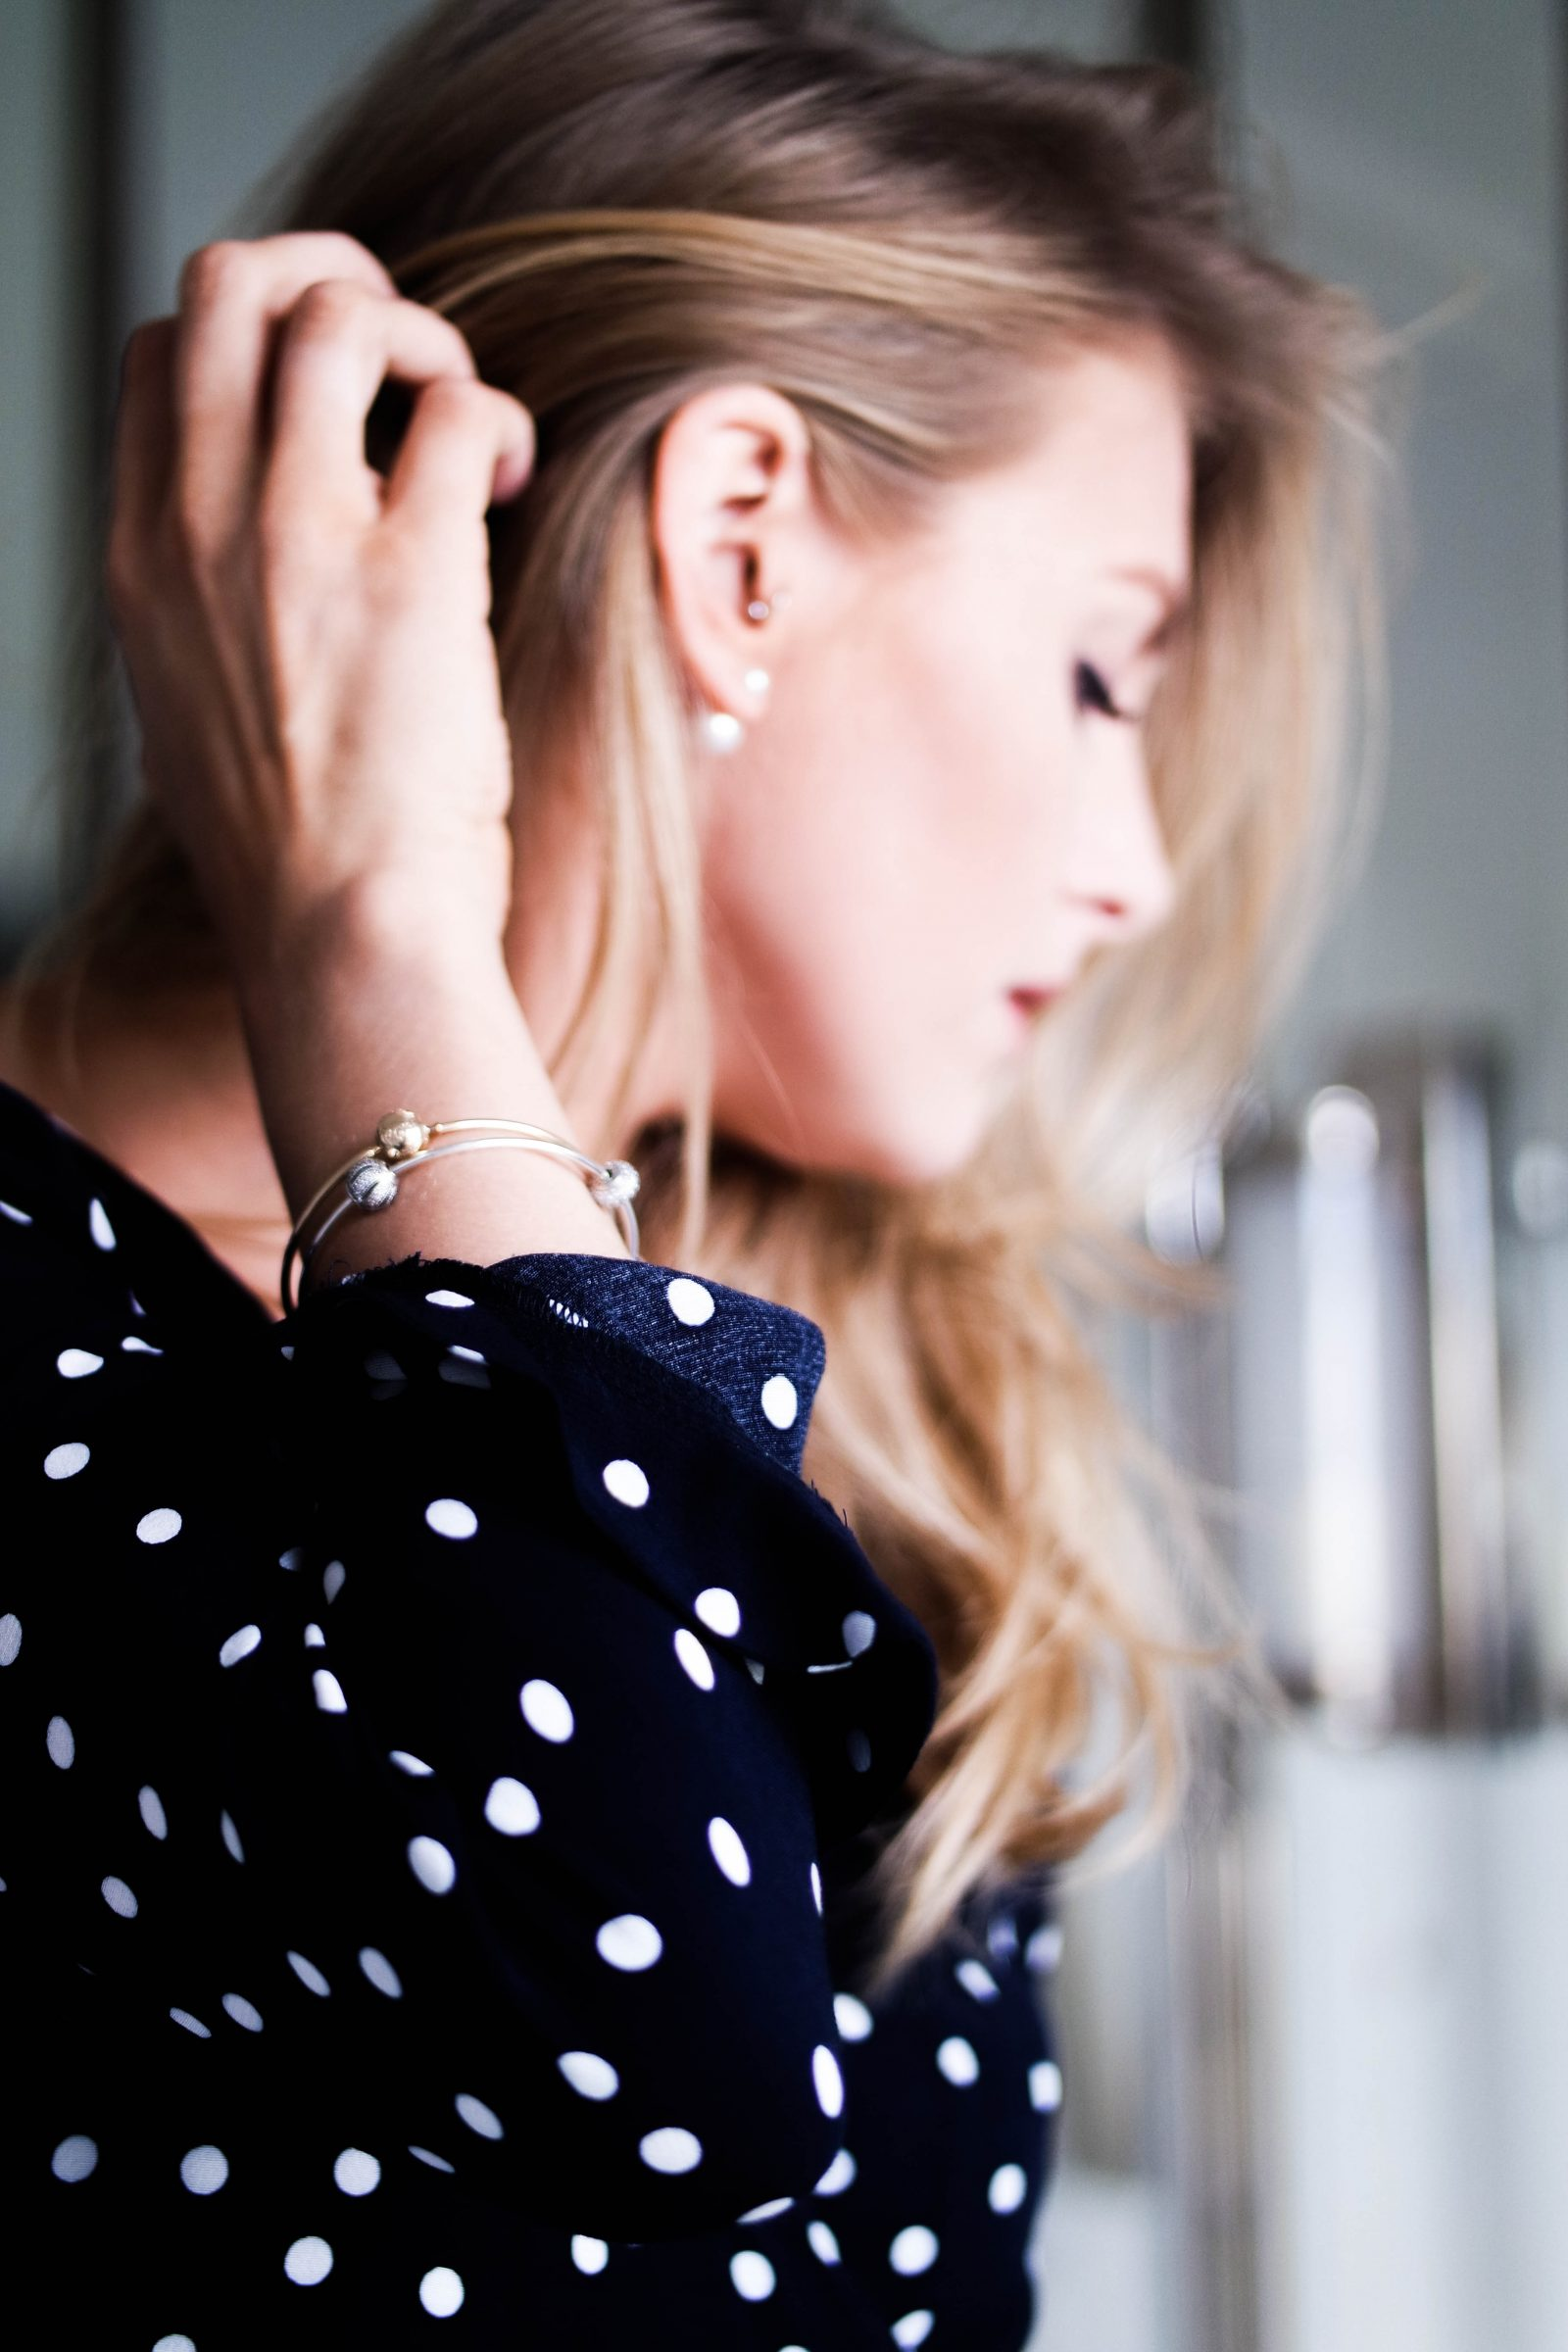 Digital Detox With Pandora - Pandora Pearl Earrings